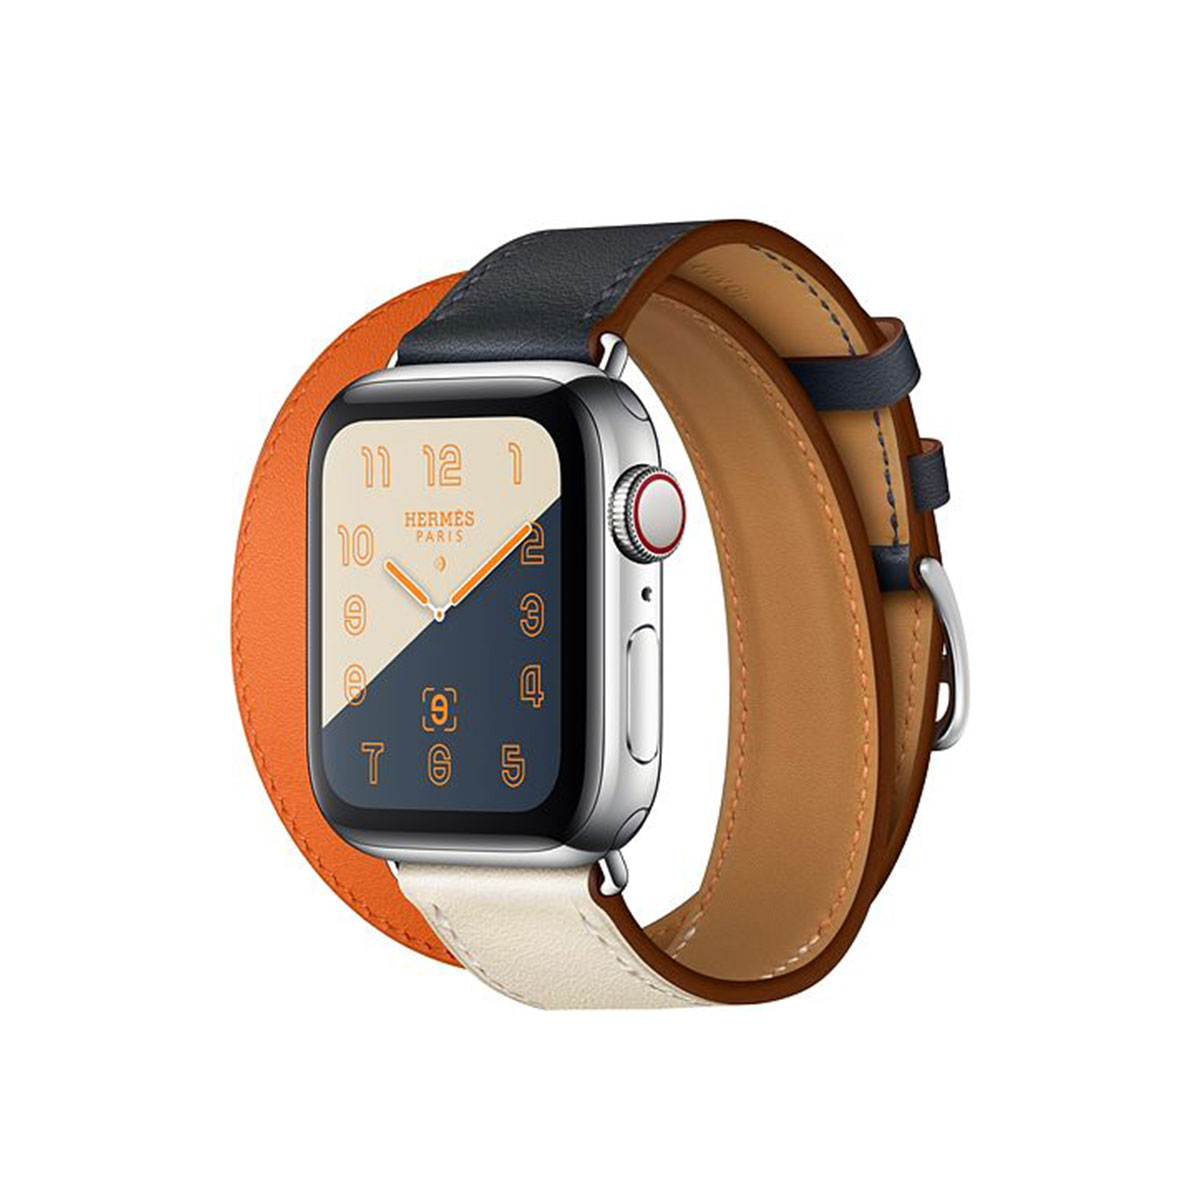 Apple Watch Hermès GPS + Cellular, 40mm Stainless Steel Case with Indigo/Craie/Orange Swift Leather Double Tour